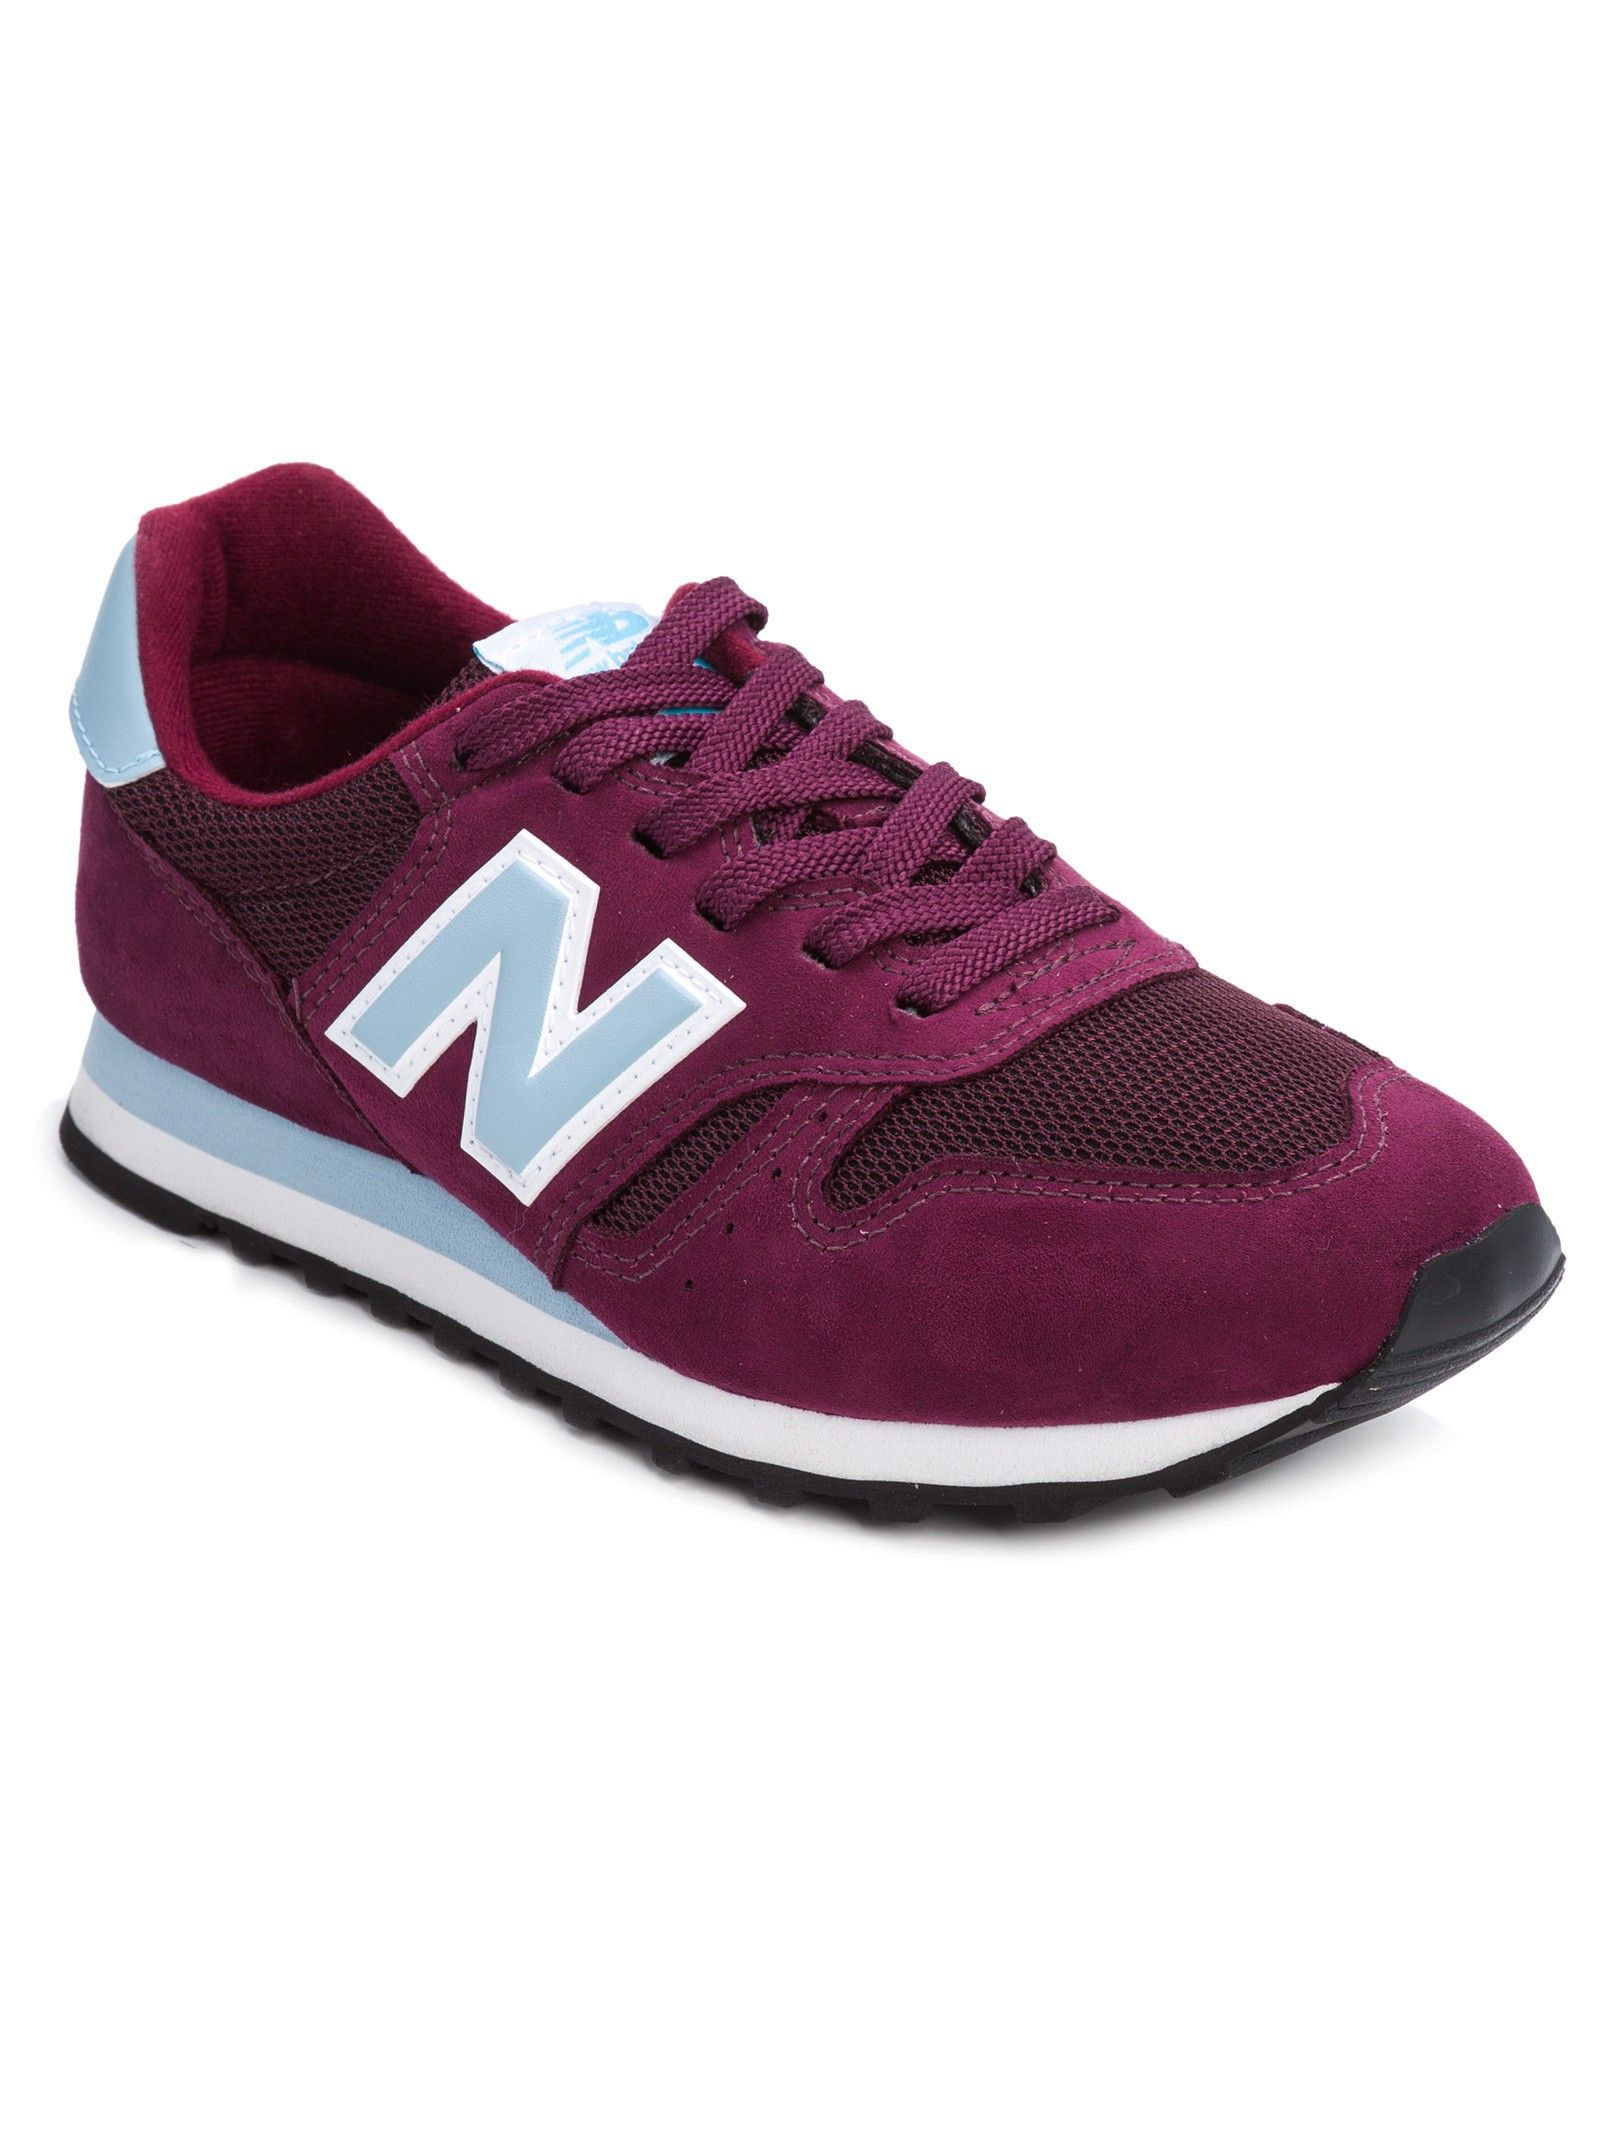 Shop2gether - Tênis Feminino M574bb36 - New Balance - Roxo ... 54d83e0018